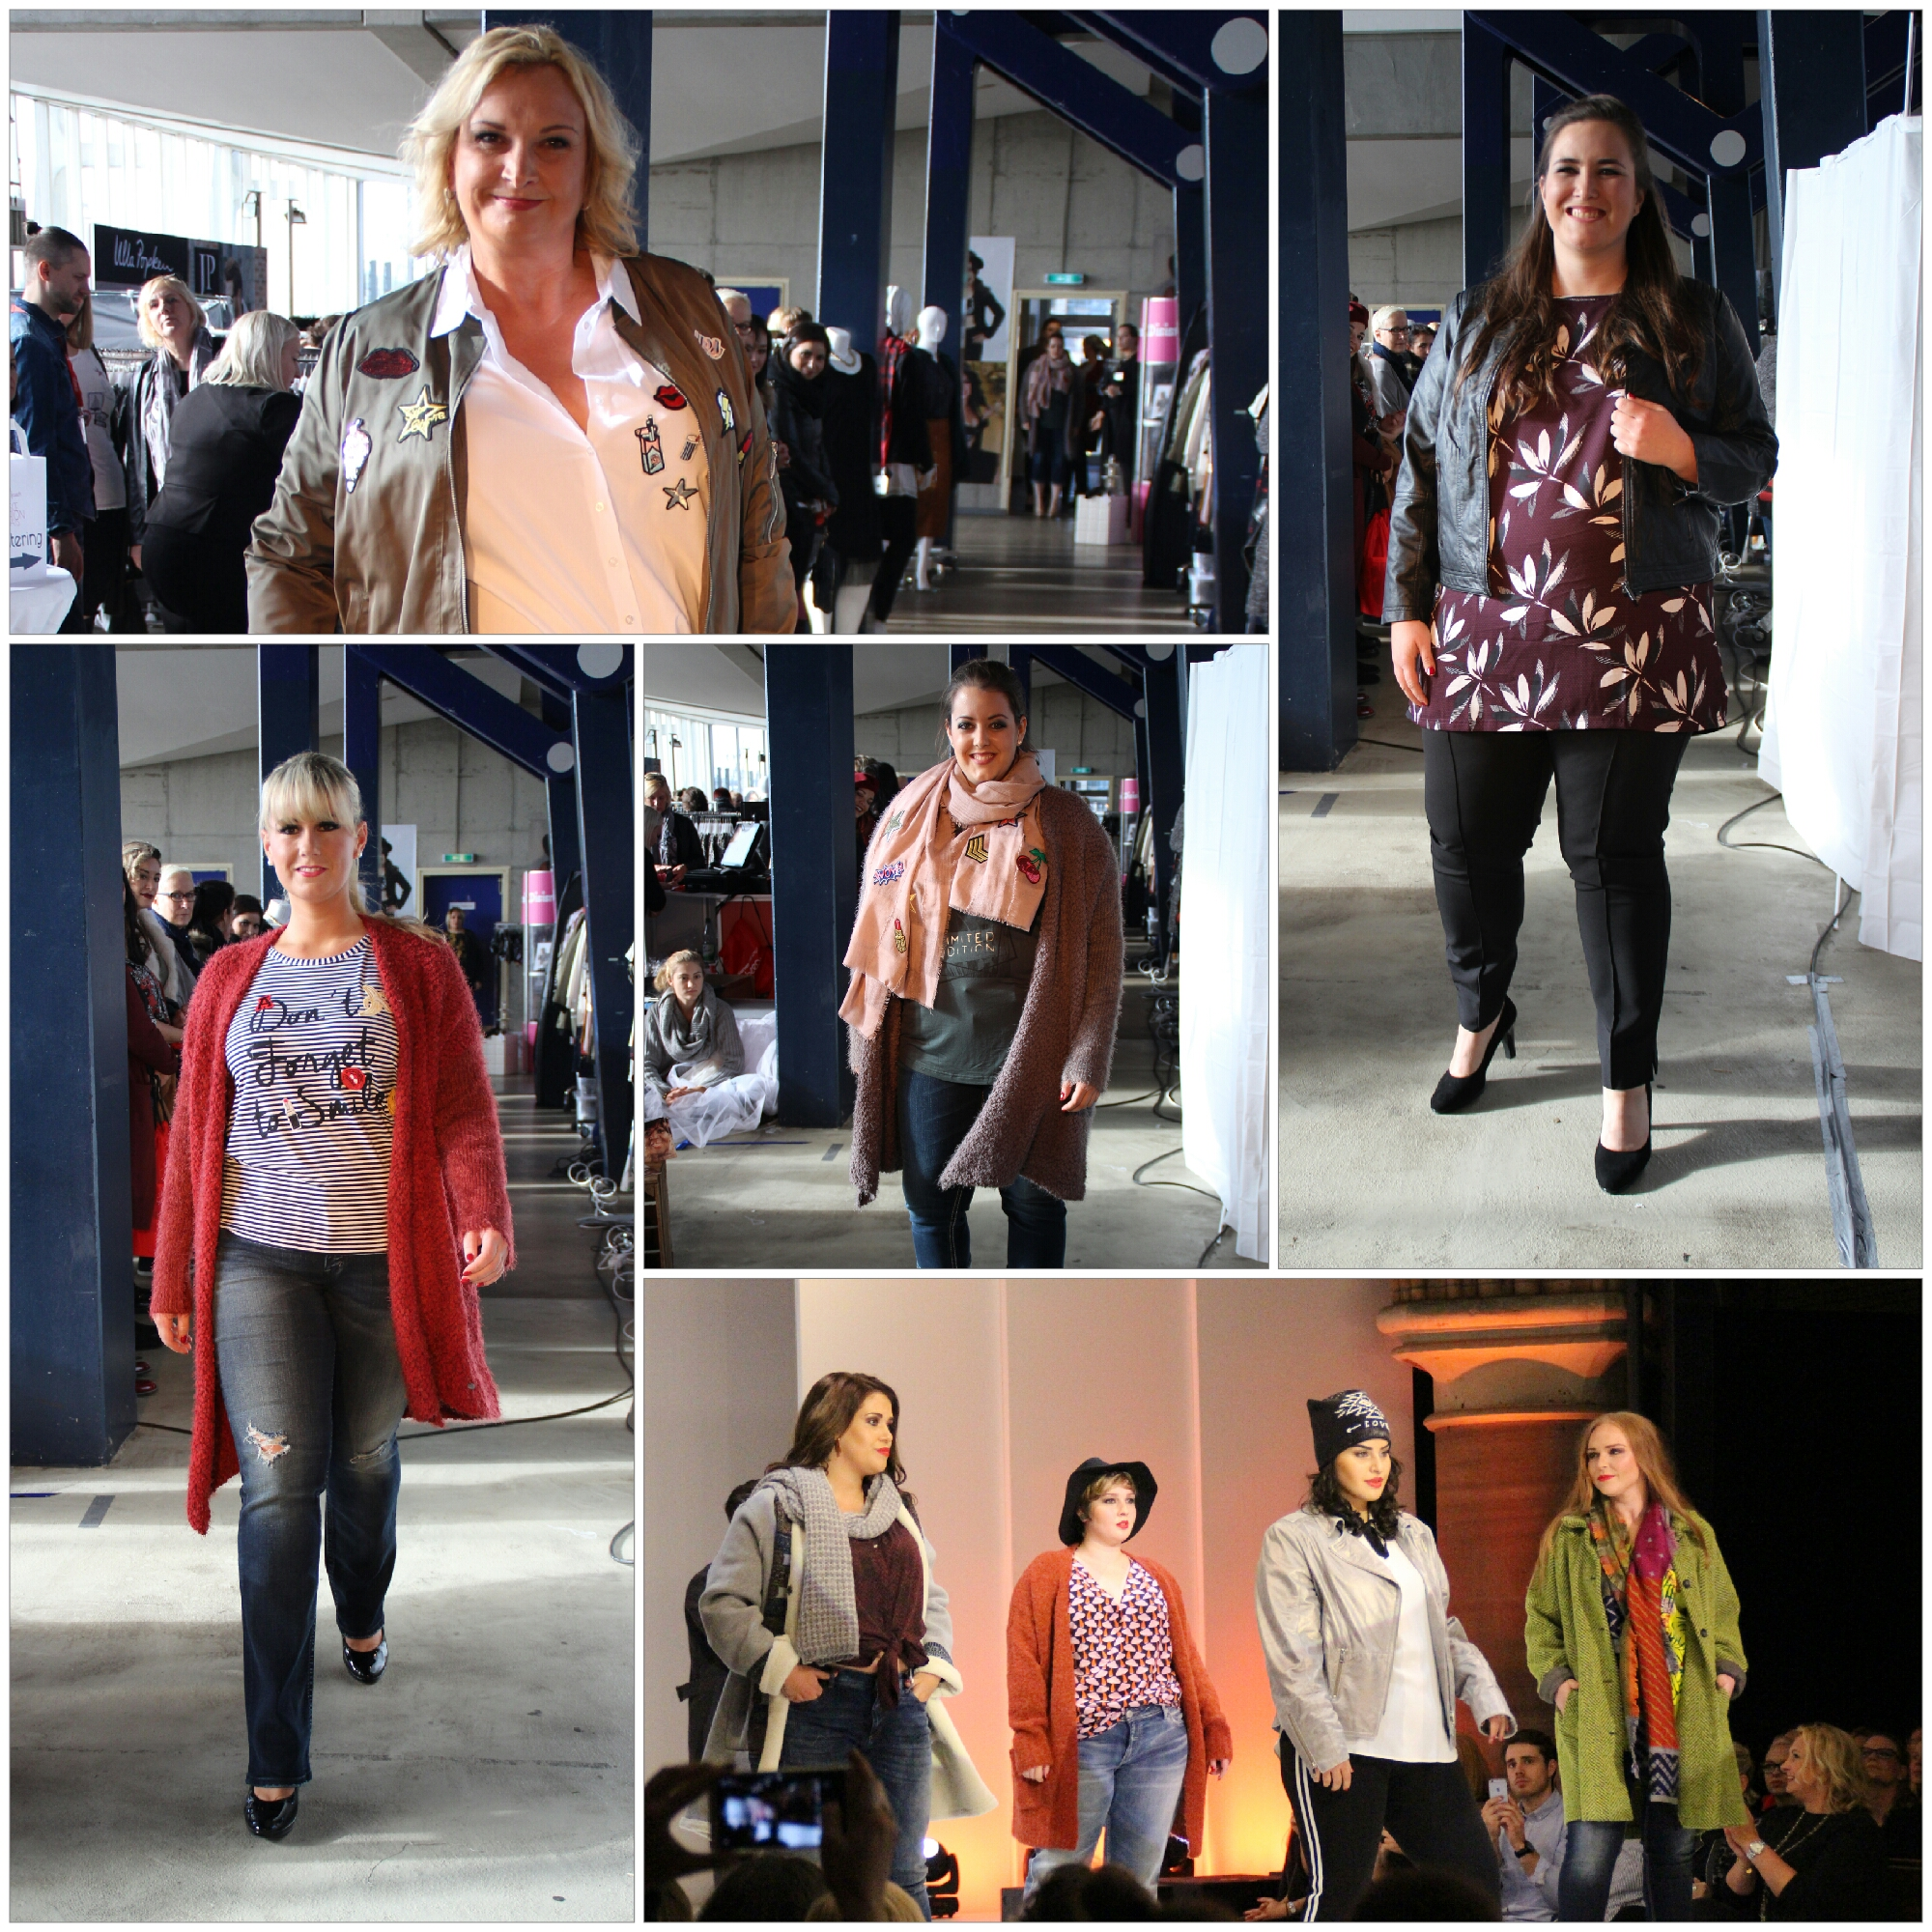 Wundercurves Plus Size Fashion Days Crispy Kurvenhaus und Zizzi